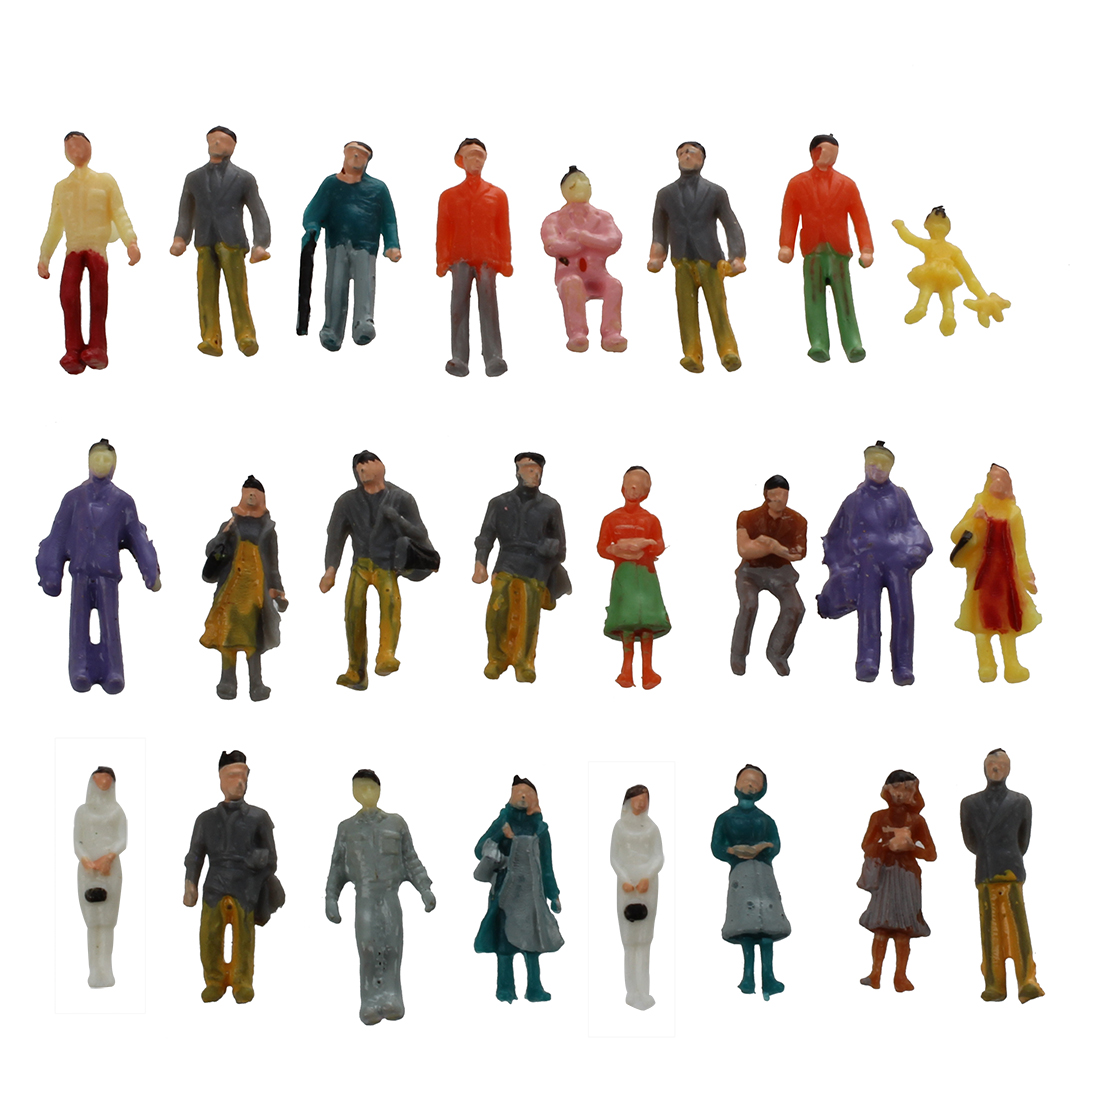 24 PCS/ Set Figurines Painted Figures Miniatures of Railway Workers with Bucket and Ladder